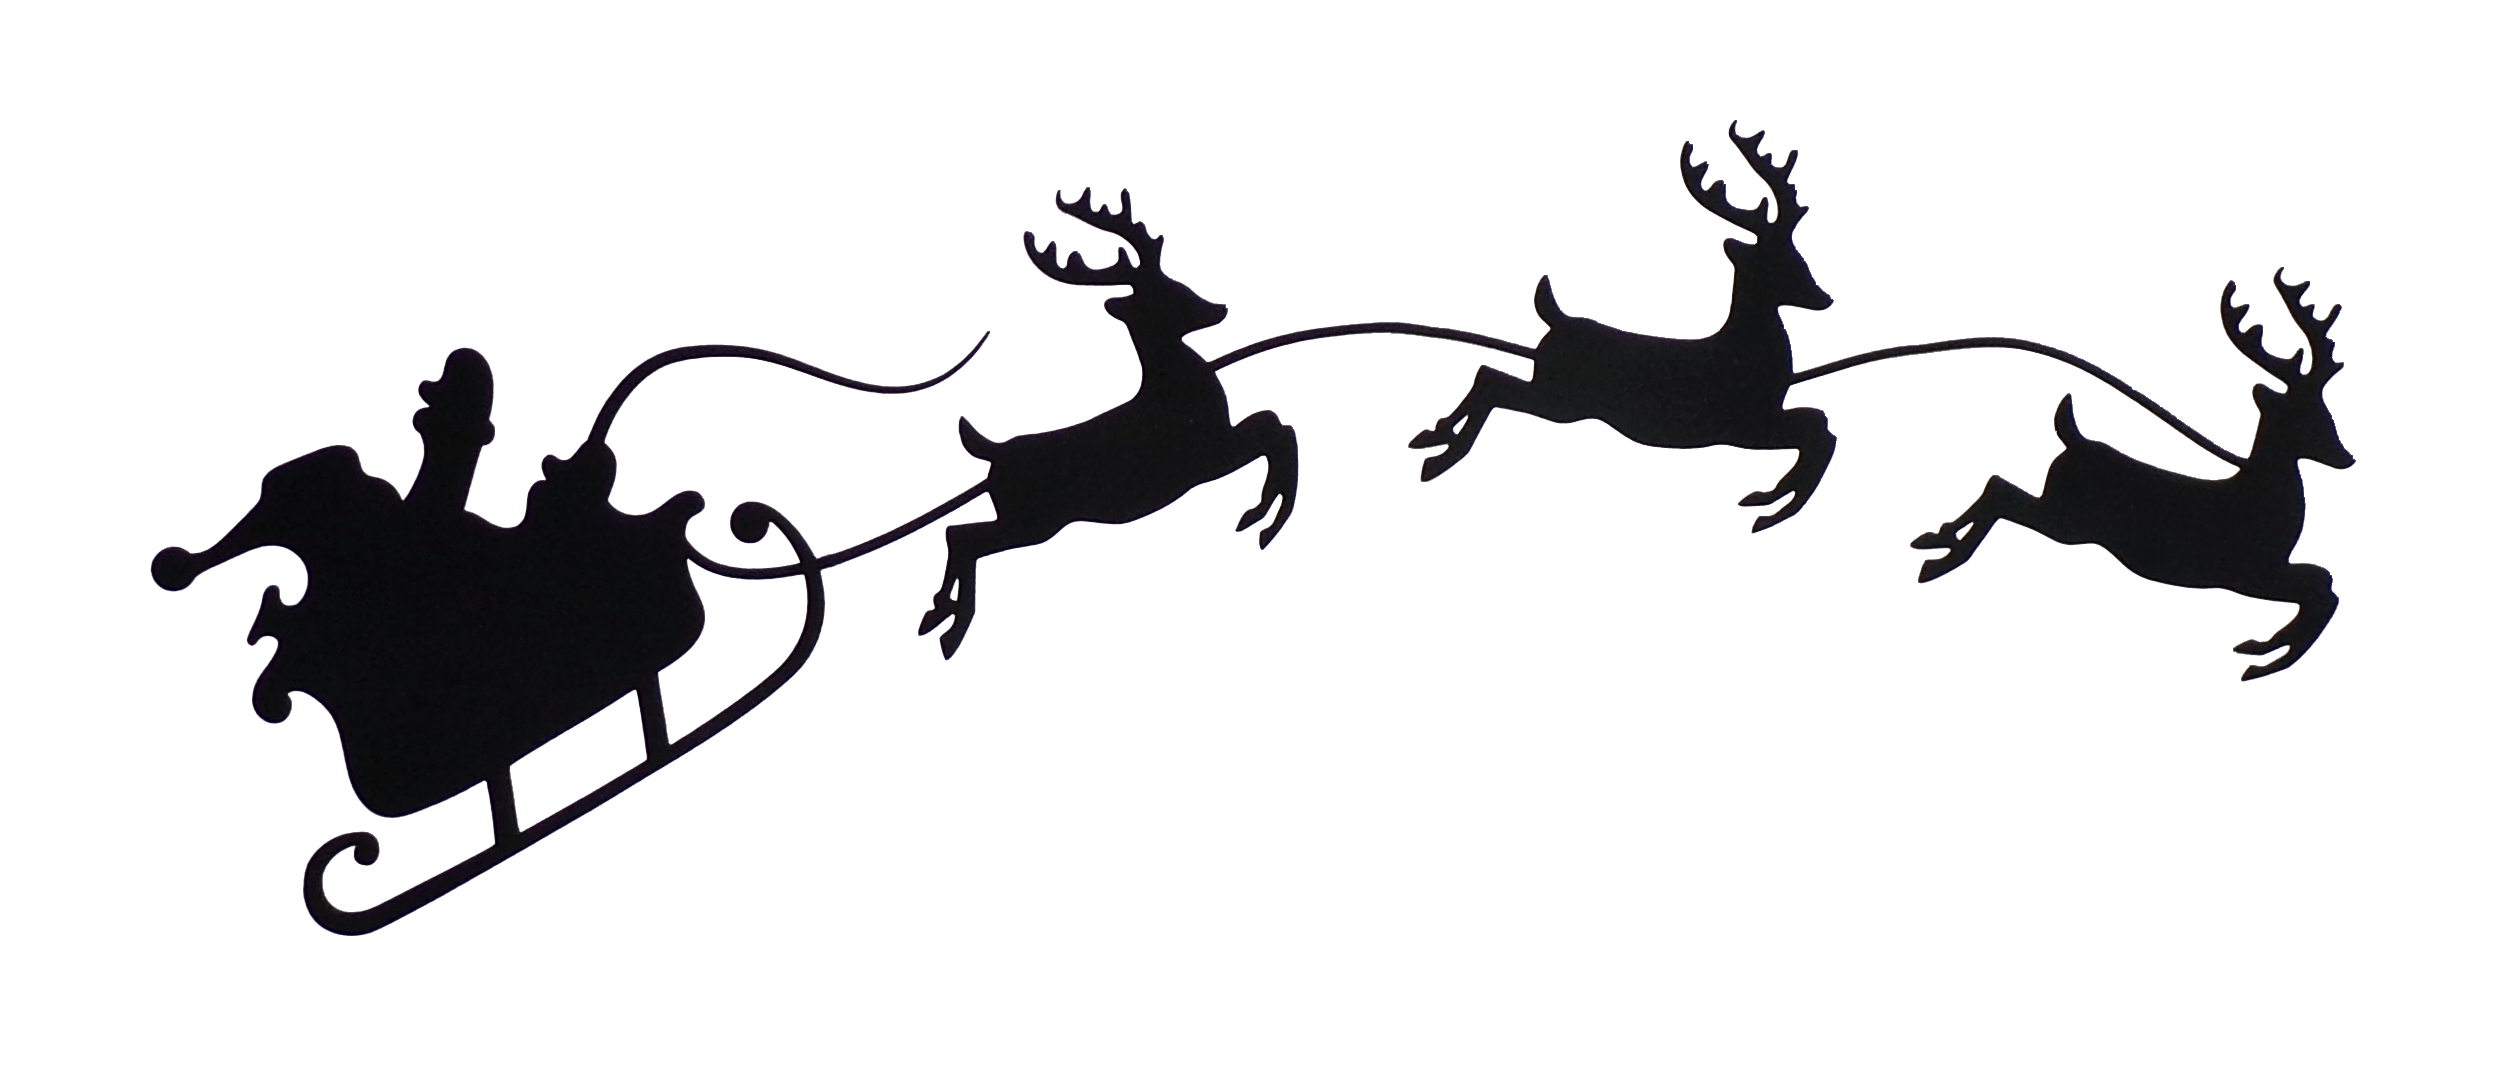 Santa Reindeer Silhouette Clipart 10 Free Cliparts